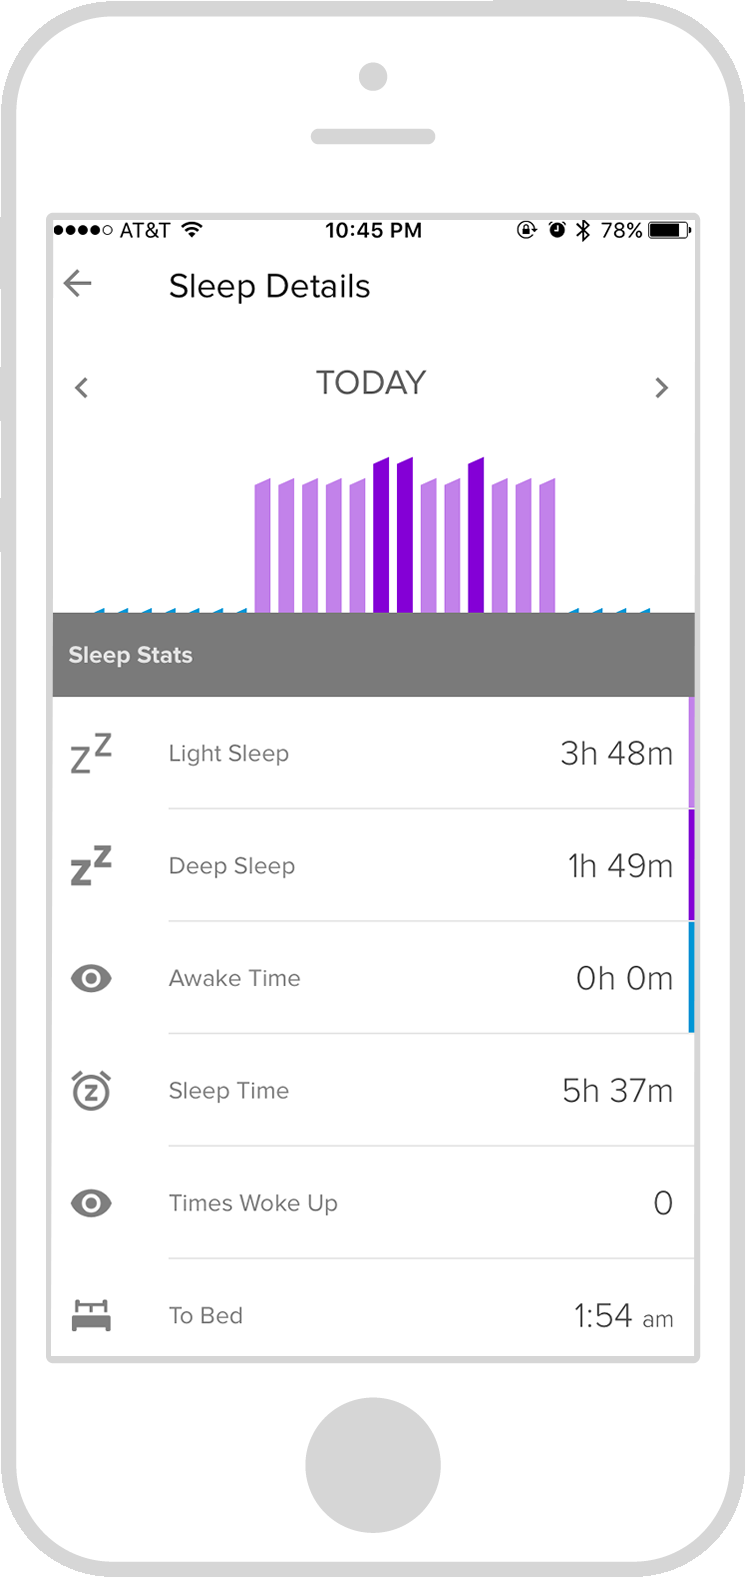 Screen Shot after drilling down from your iFit Coach Dashboard on your past nights sleep. Here you can see how you slept - the graph pointing out deep sleep vs. light sleep and during which hours this occurred.